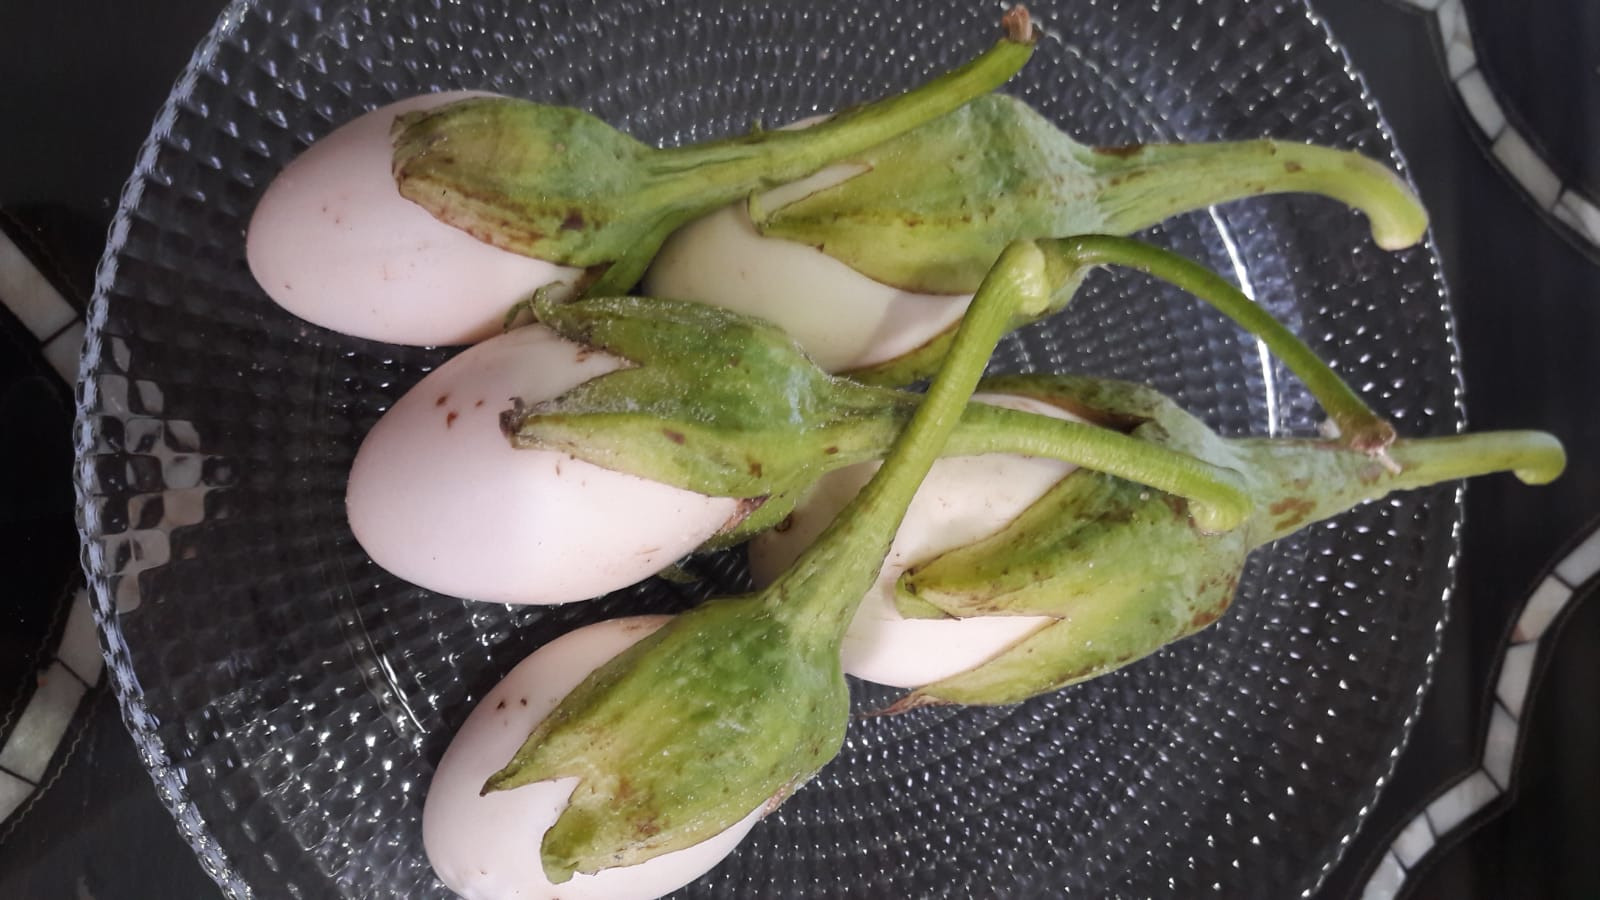 Candied Eggplants in Syrup